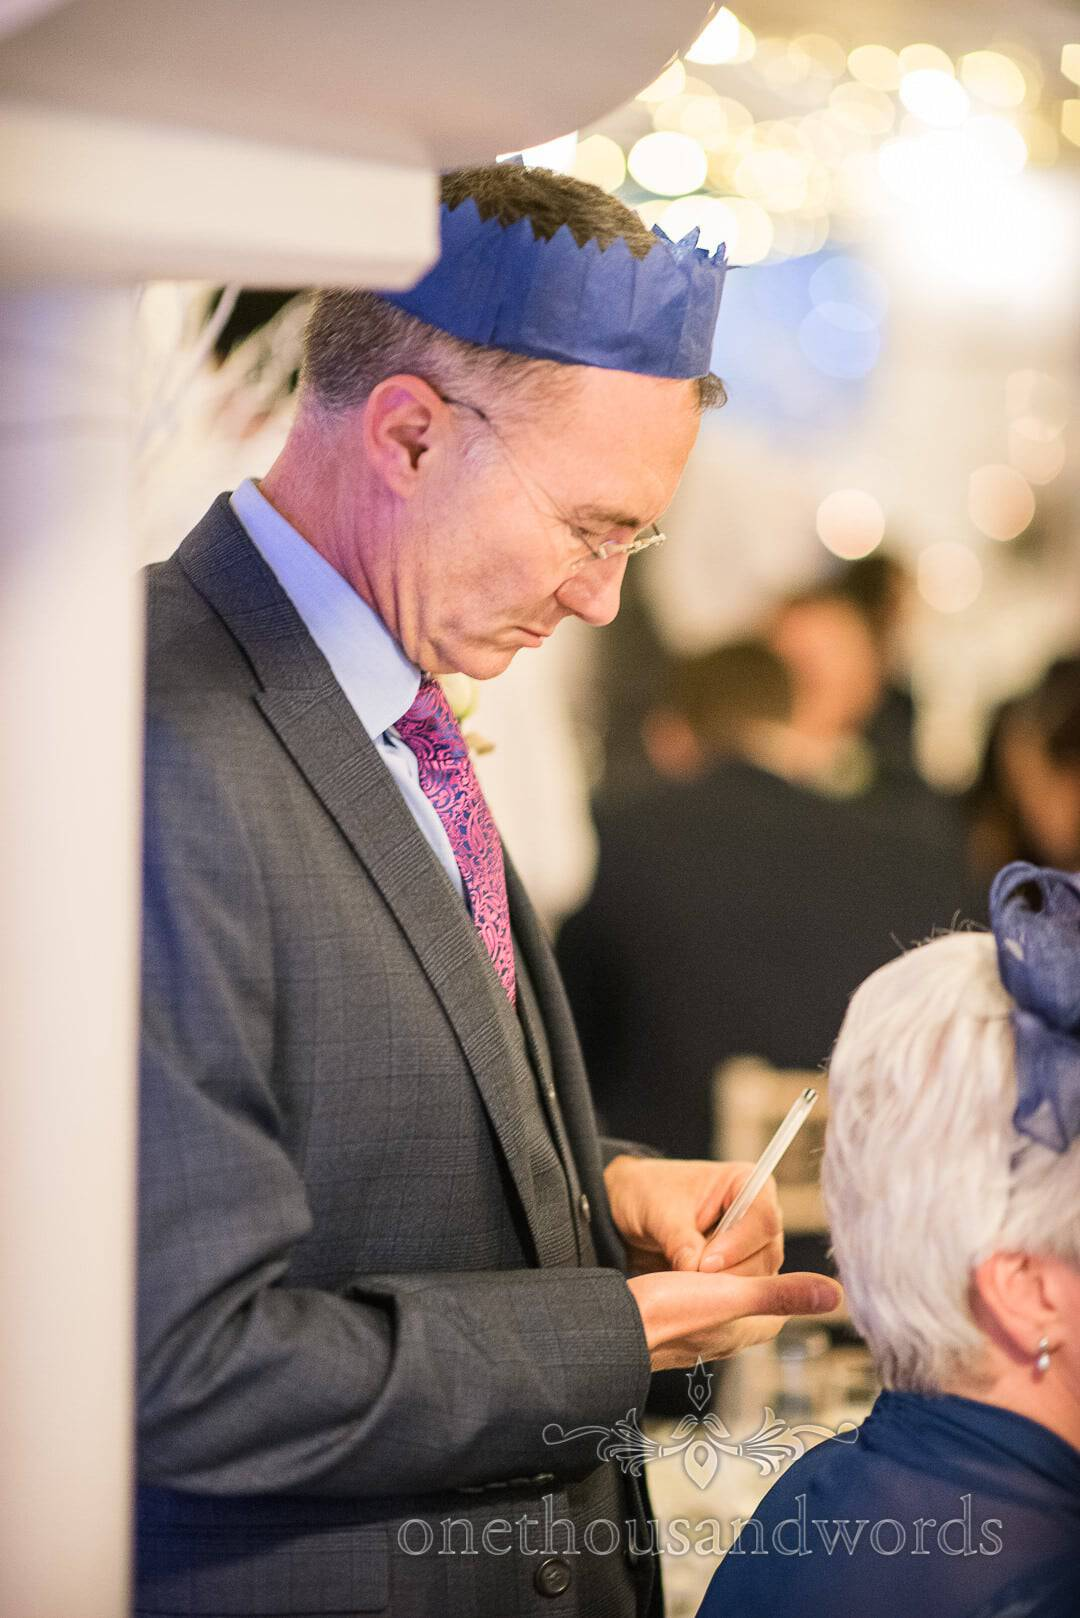 Father of the groom in Christmas party hat takes nots on wedding proceedings